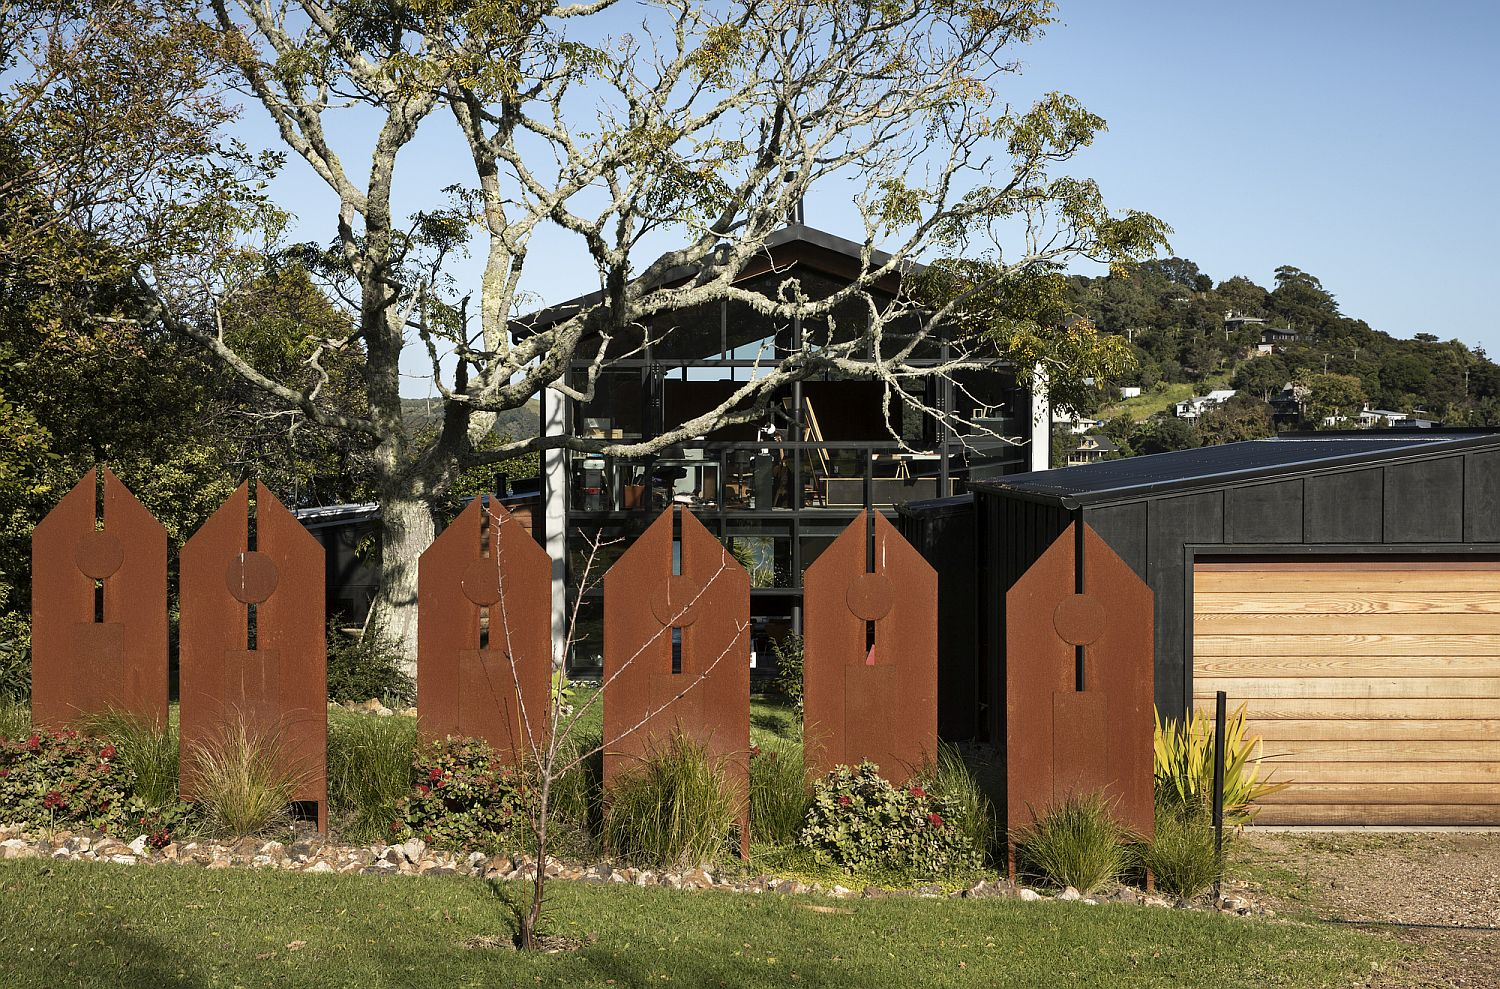 Anzac Bay House Inspired By The Village Square With A Church